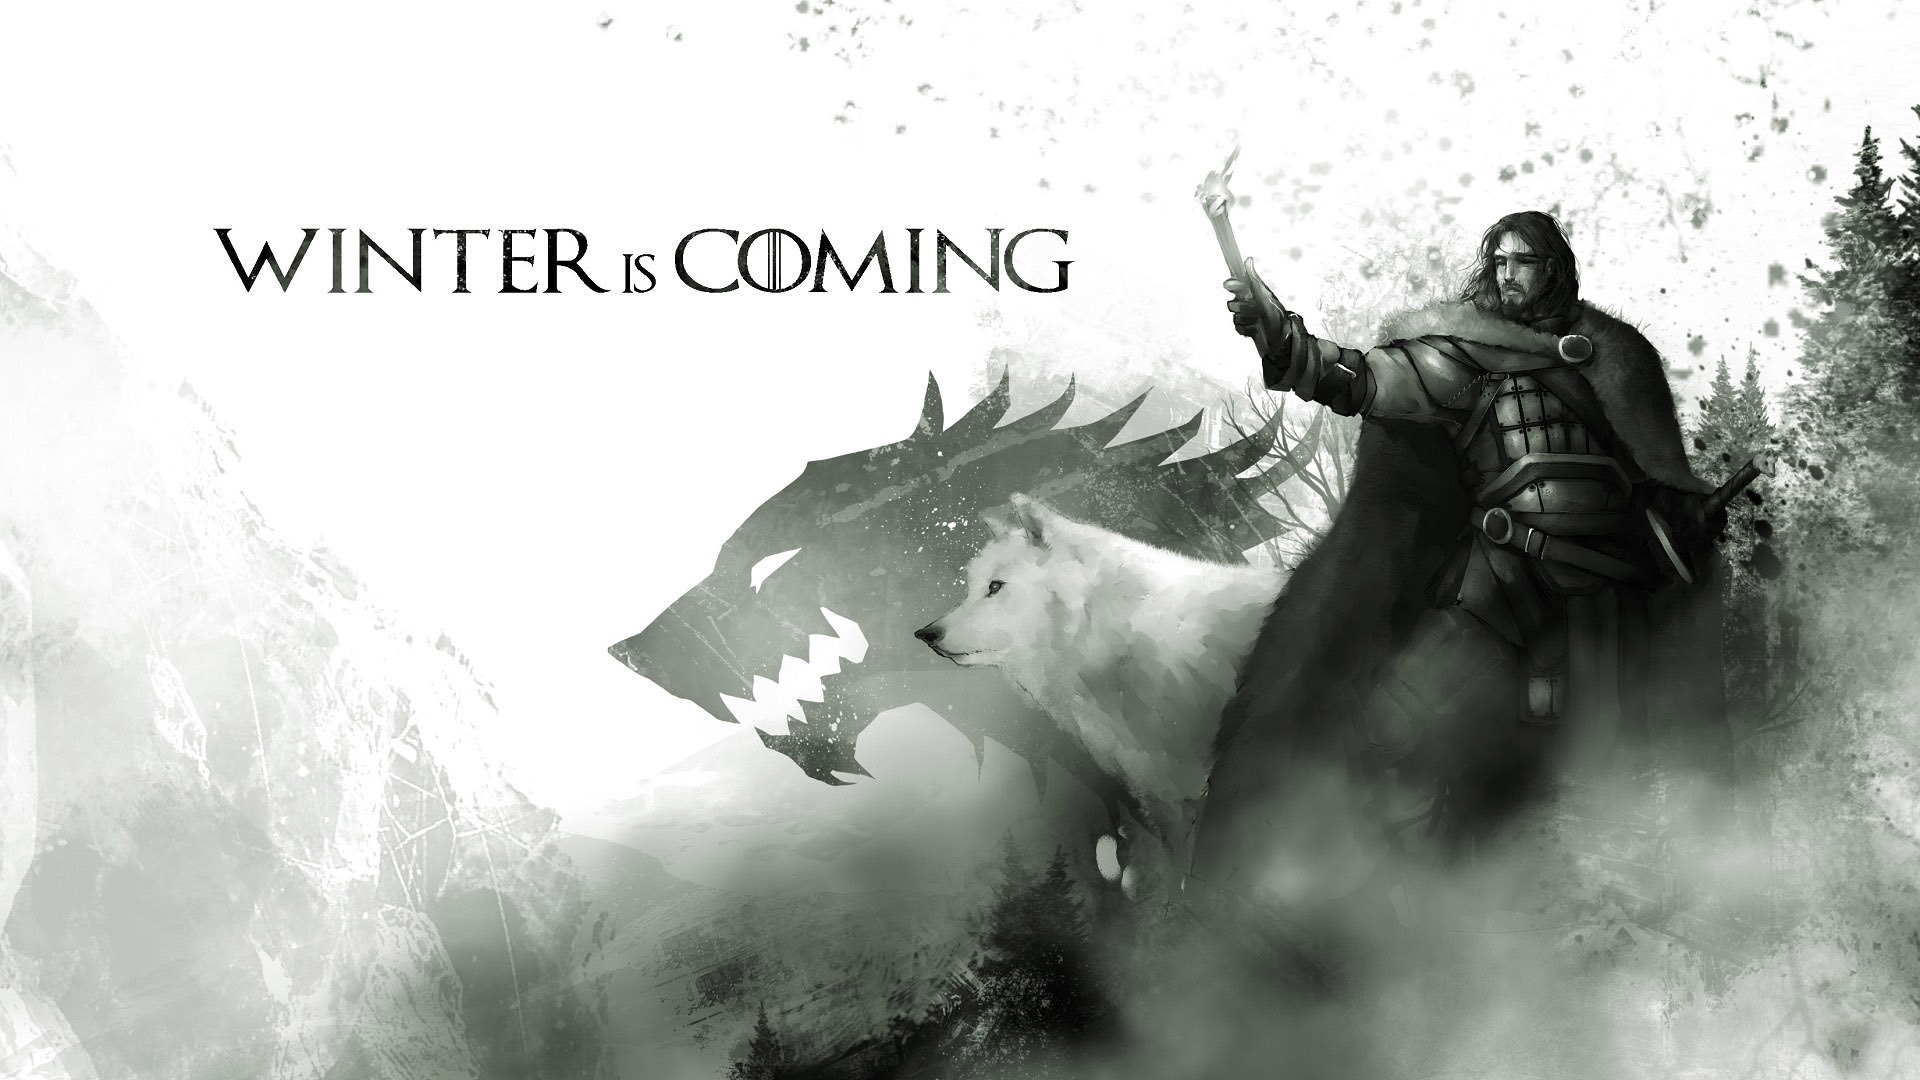 Game of thrones season 4 wallpapers hd deteched game of thrones season 4 wallpapers hd voltagebd Images